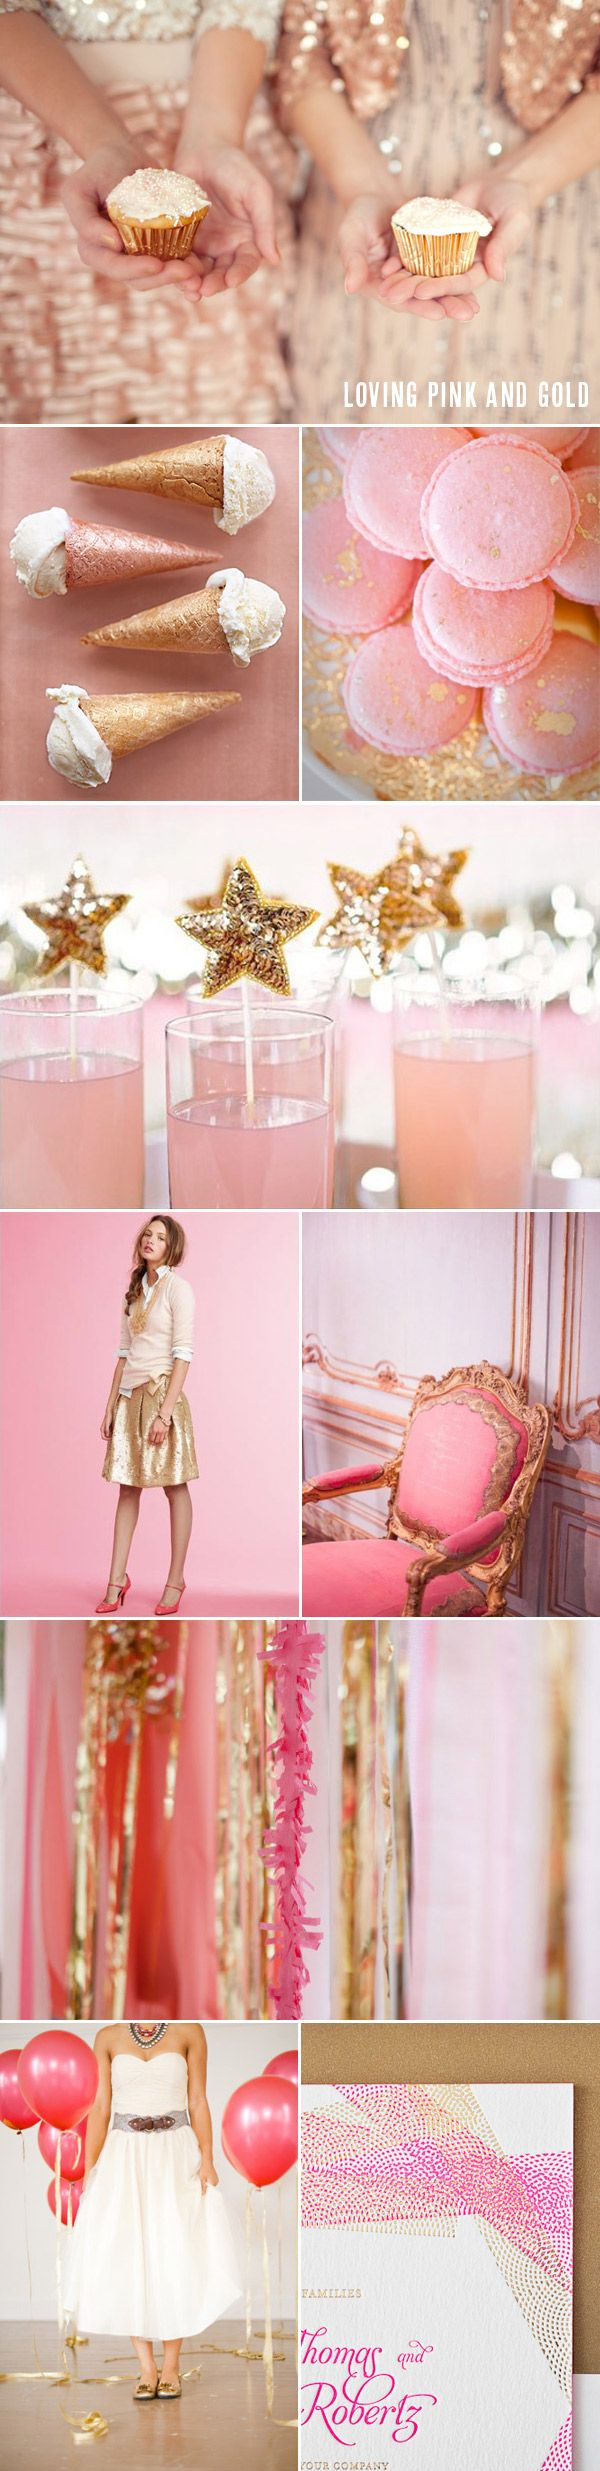 .pink + gold theme. love it!